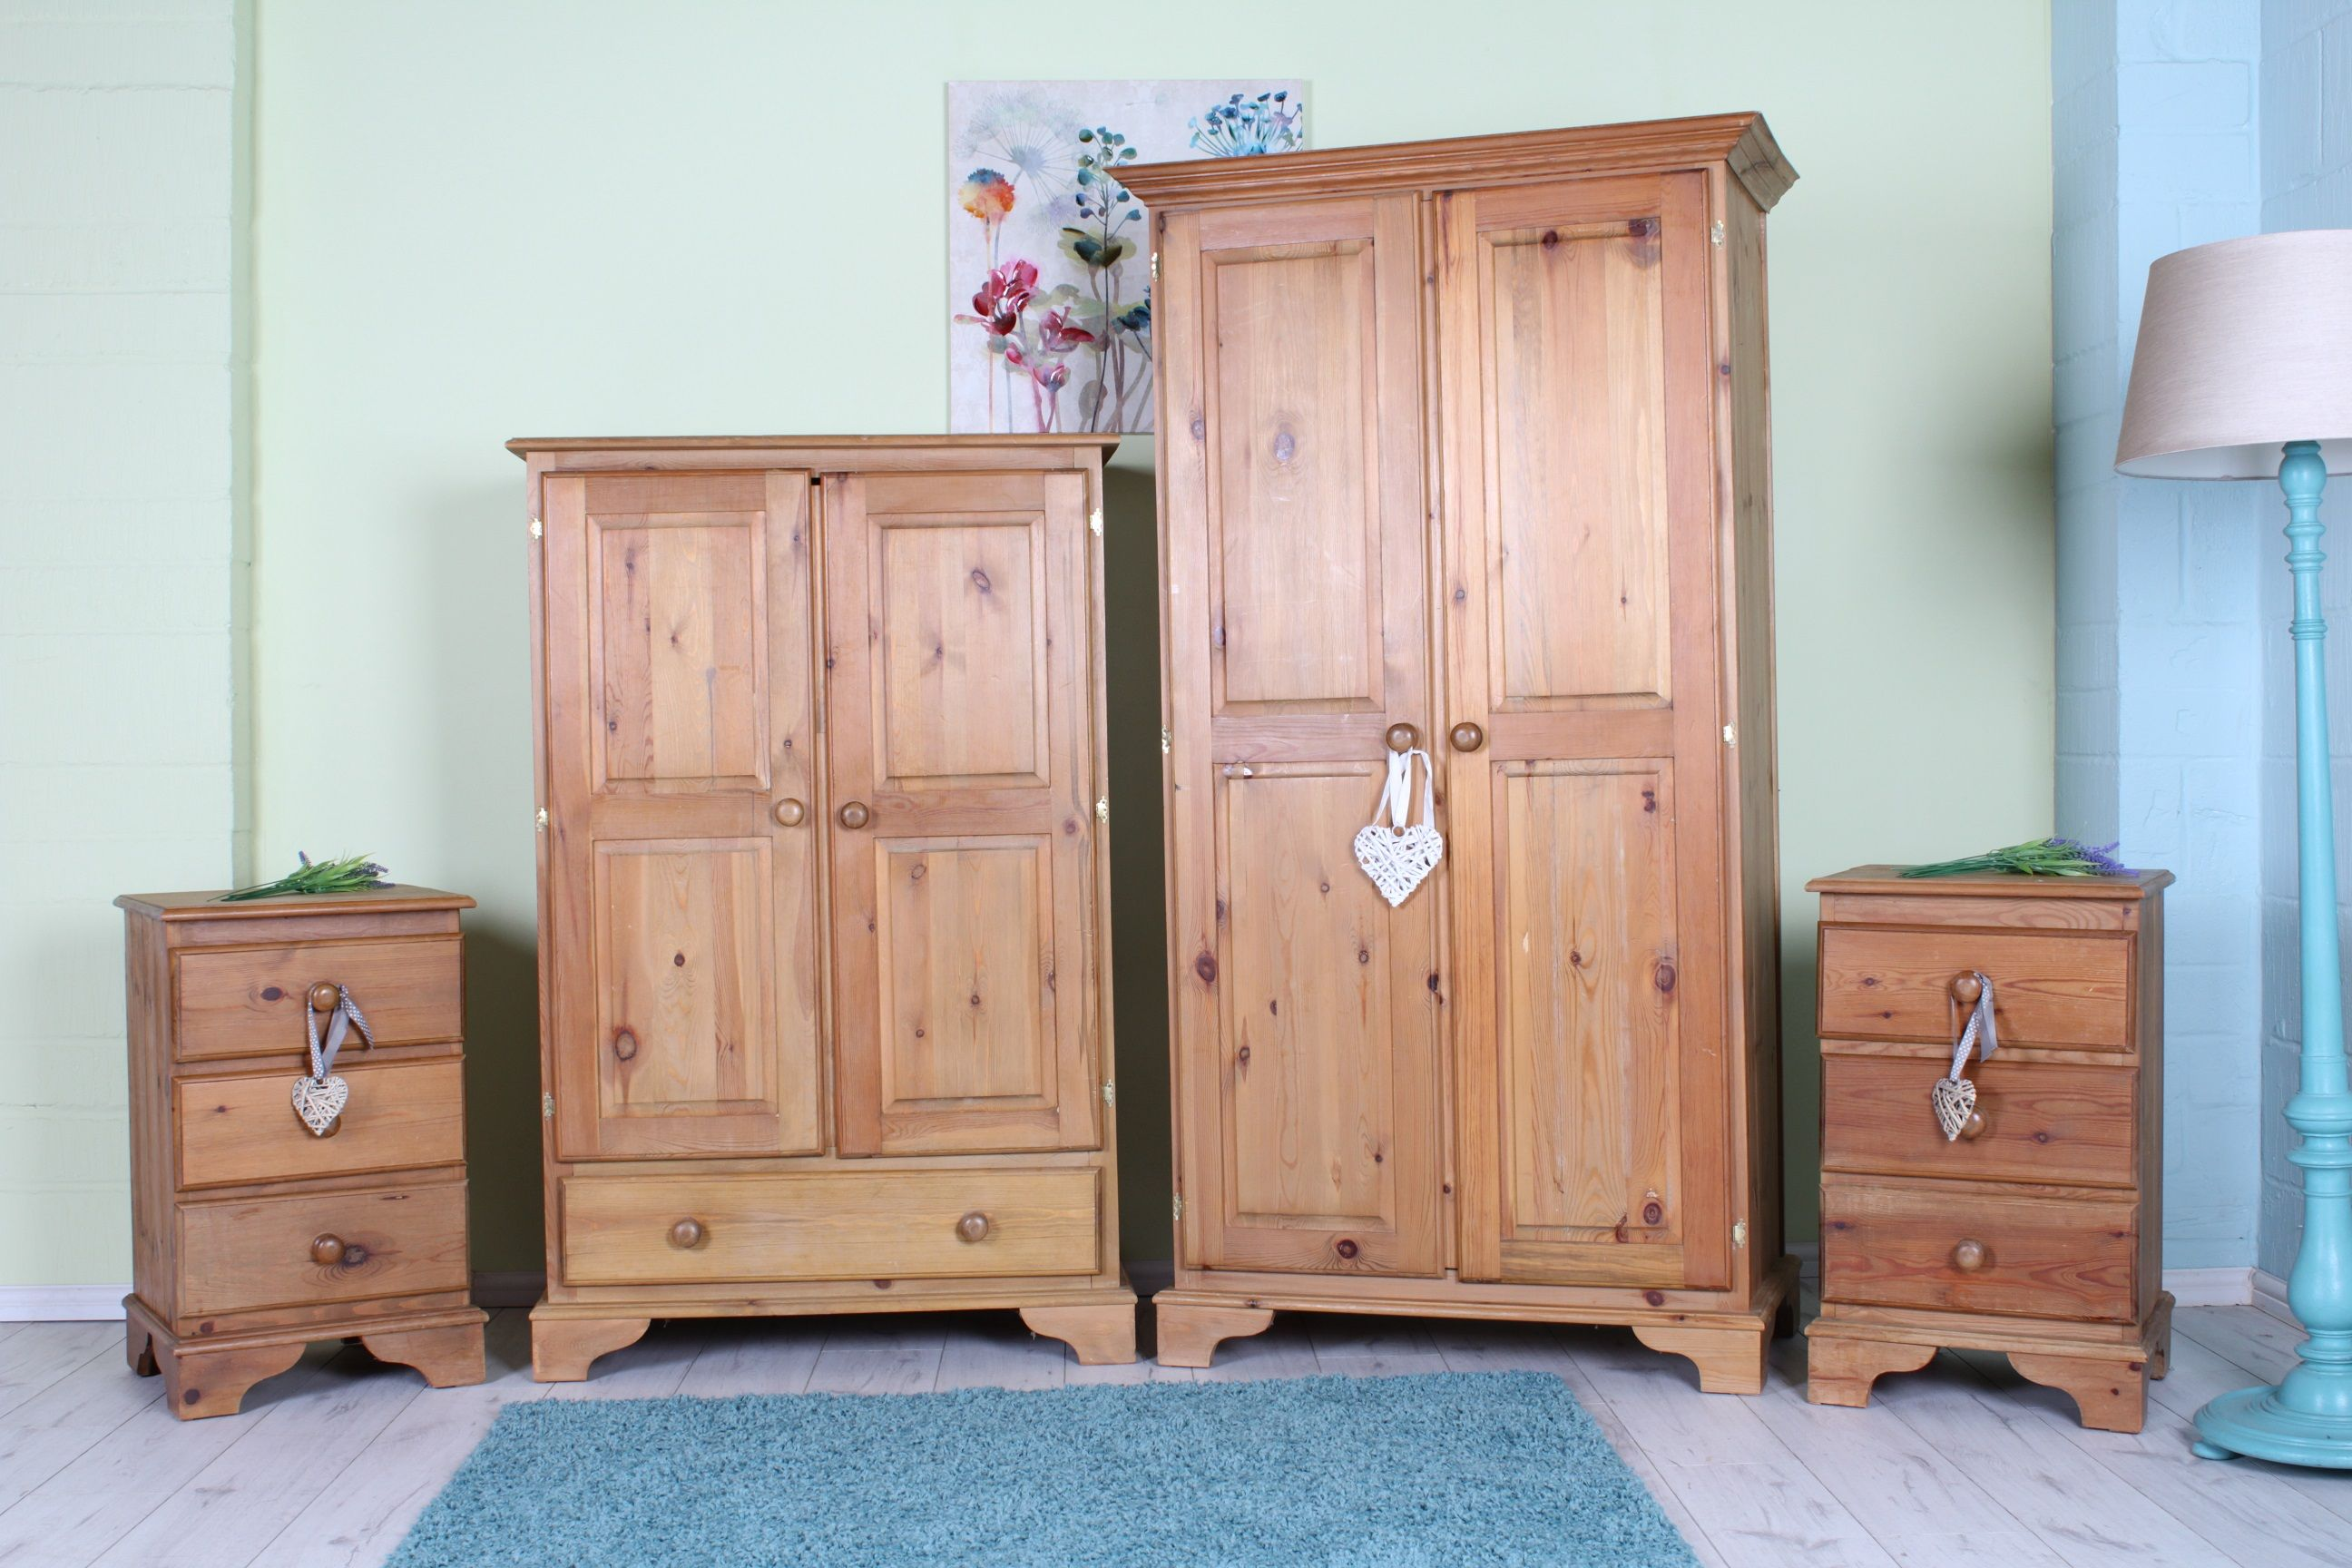 Solid Pine Bedroom Furniture Set Waxed Finish Light Rustic Look Can Courier Pine Bedroom Furniture Bedroom Furniture Sets Furniture